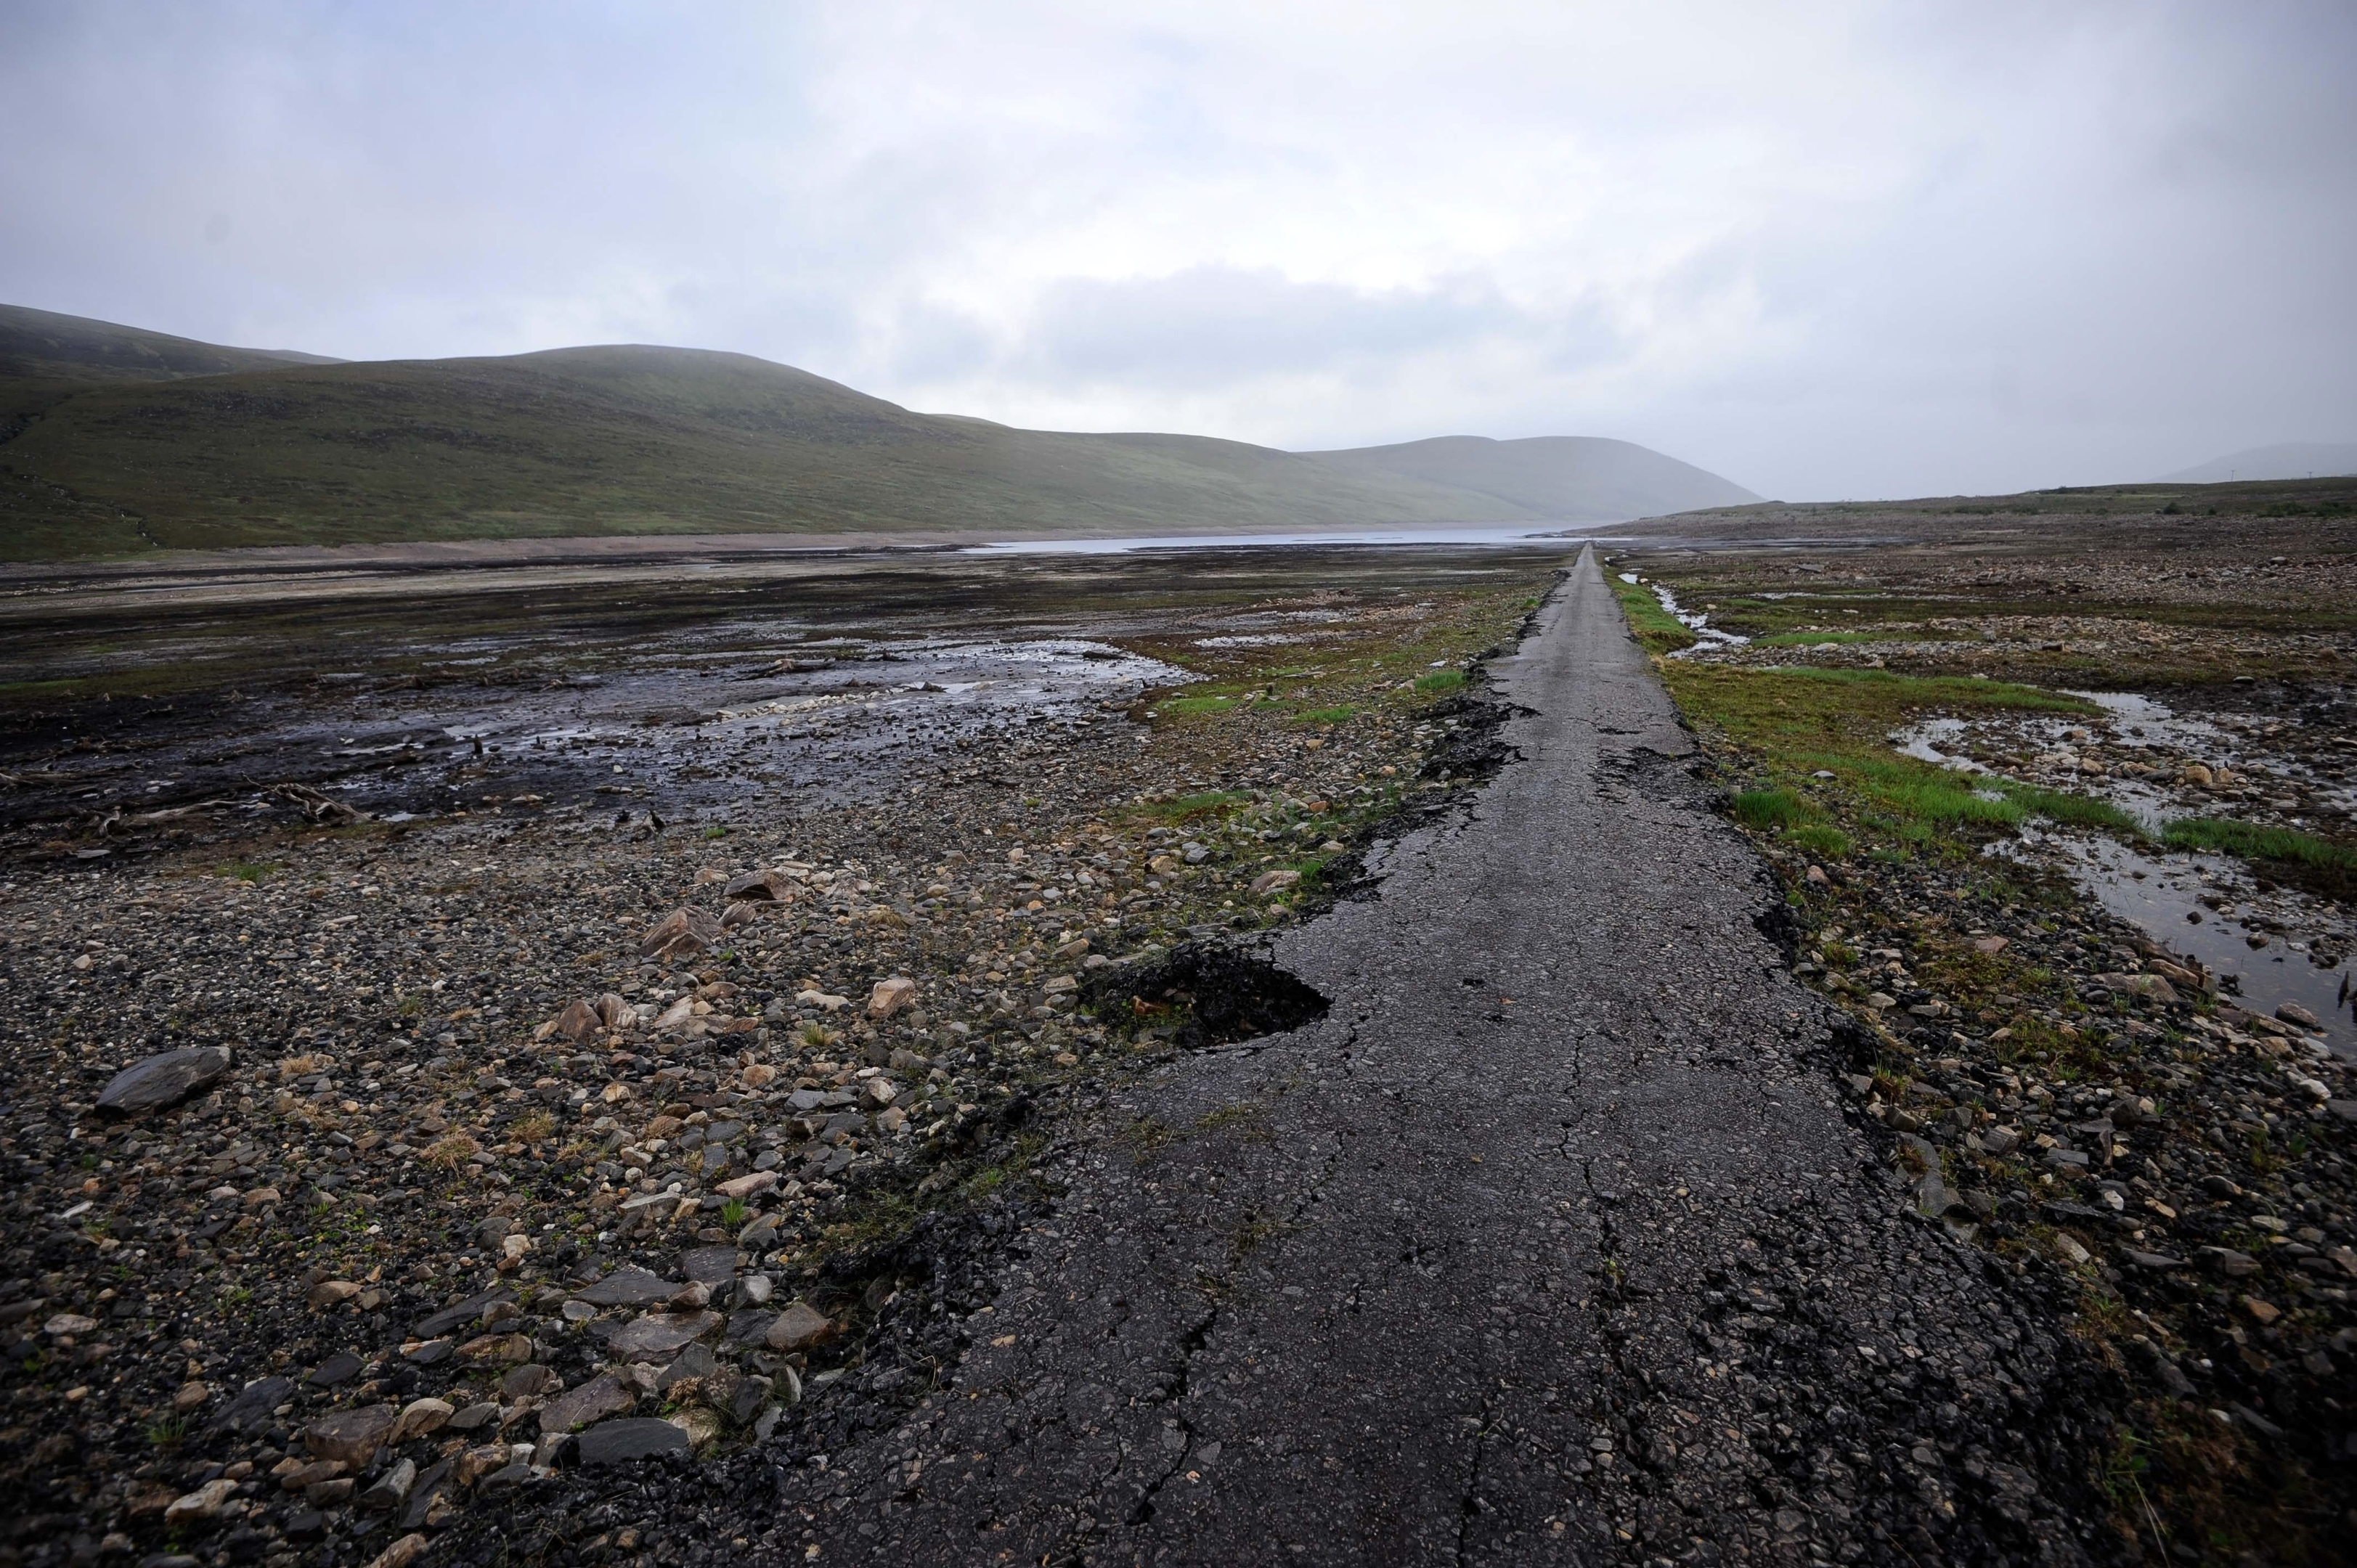 An ancient road is revealed in drained Loch Glascarnoch